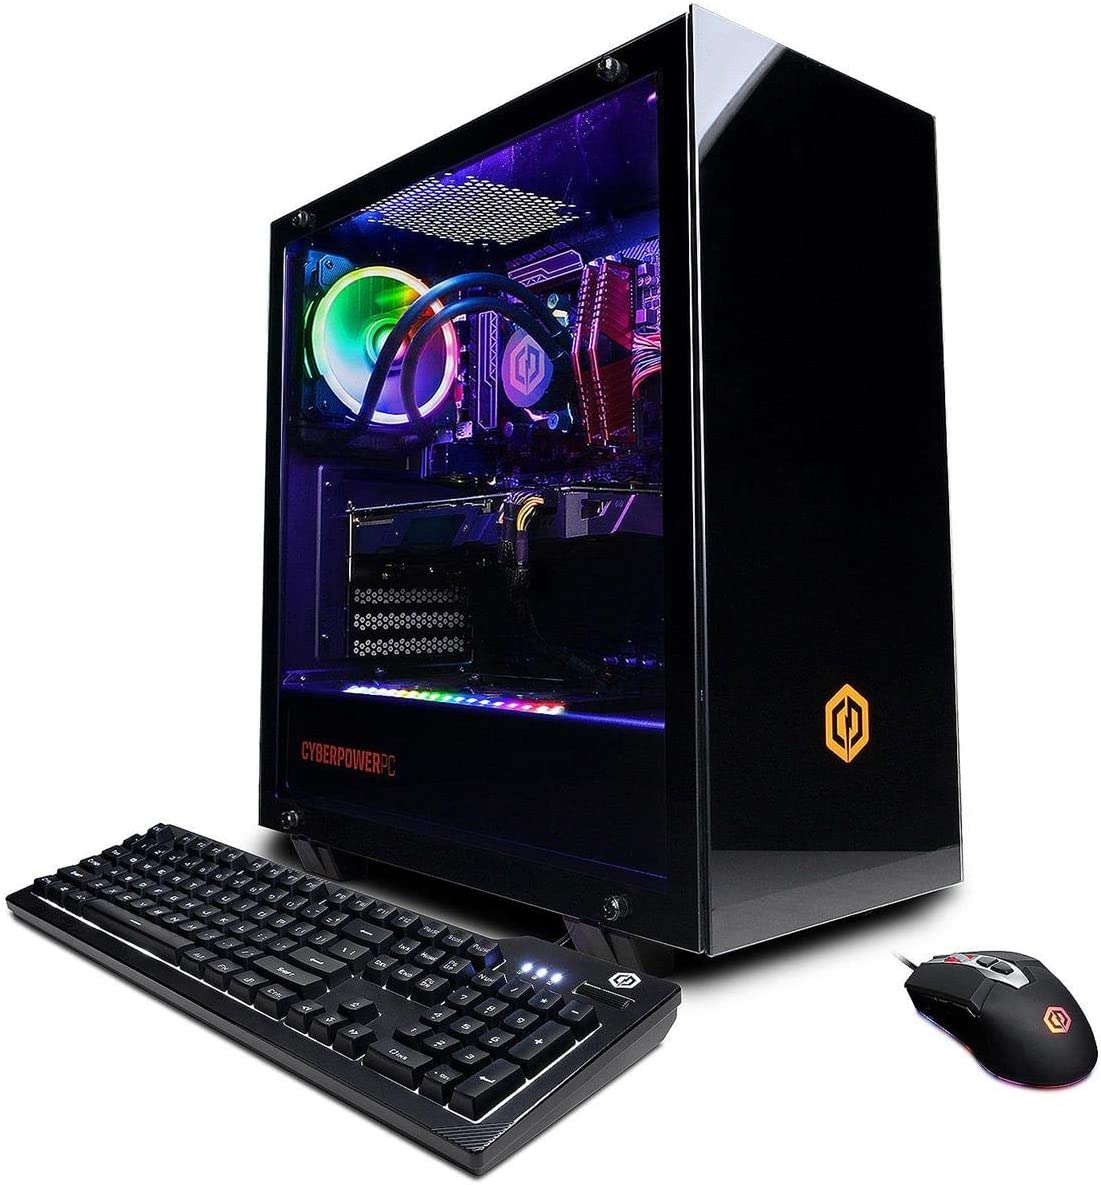 CyberpowerPC Gamer Supreme Liquid Cool Gaming Desktop Computer, AMD Ryzen 7 3700X 3.6GHz, 16GB RAM, 240GB SSD + 2TB HDD, AMD Radeon RX 5500 XT 8GB, Windows 10 Home